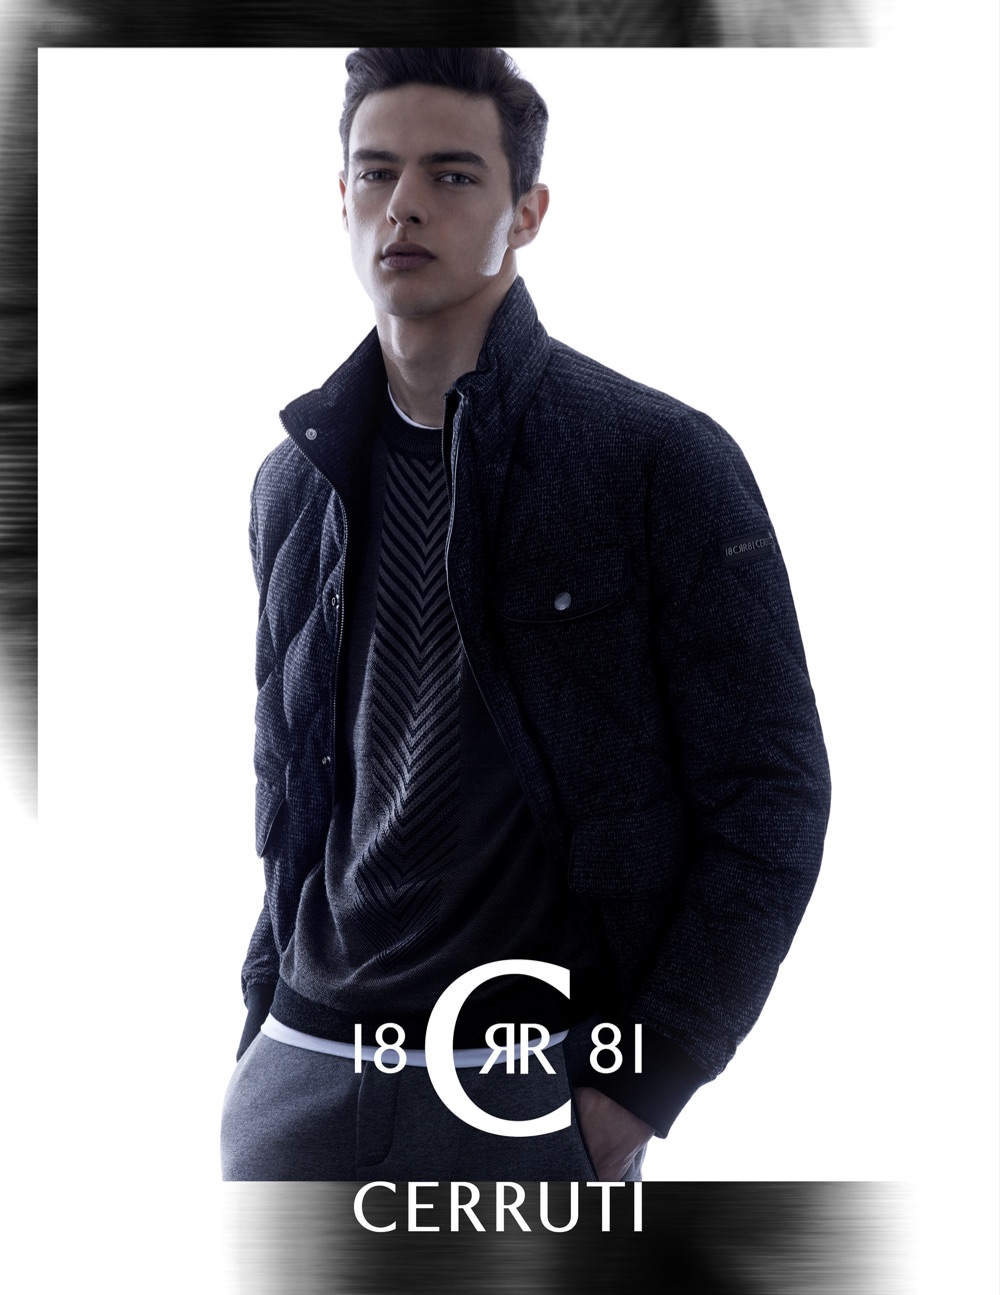 Cerruti 1881 Fall/Winter 2015 Menswear Campaign Featuring Hannes Gobeyn